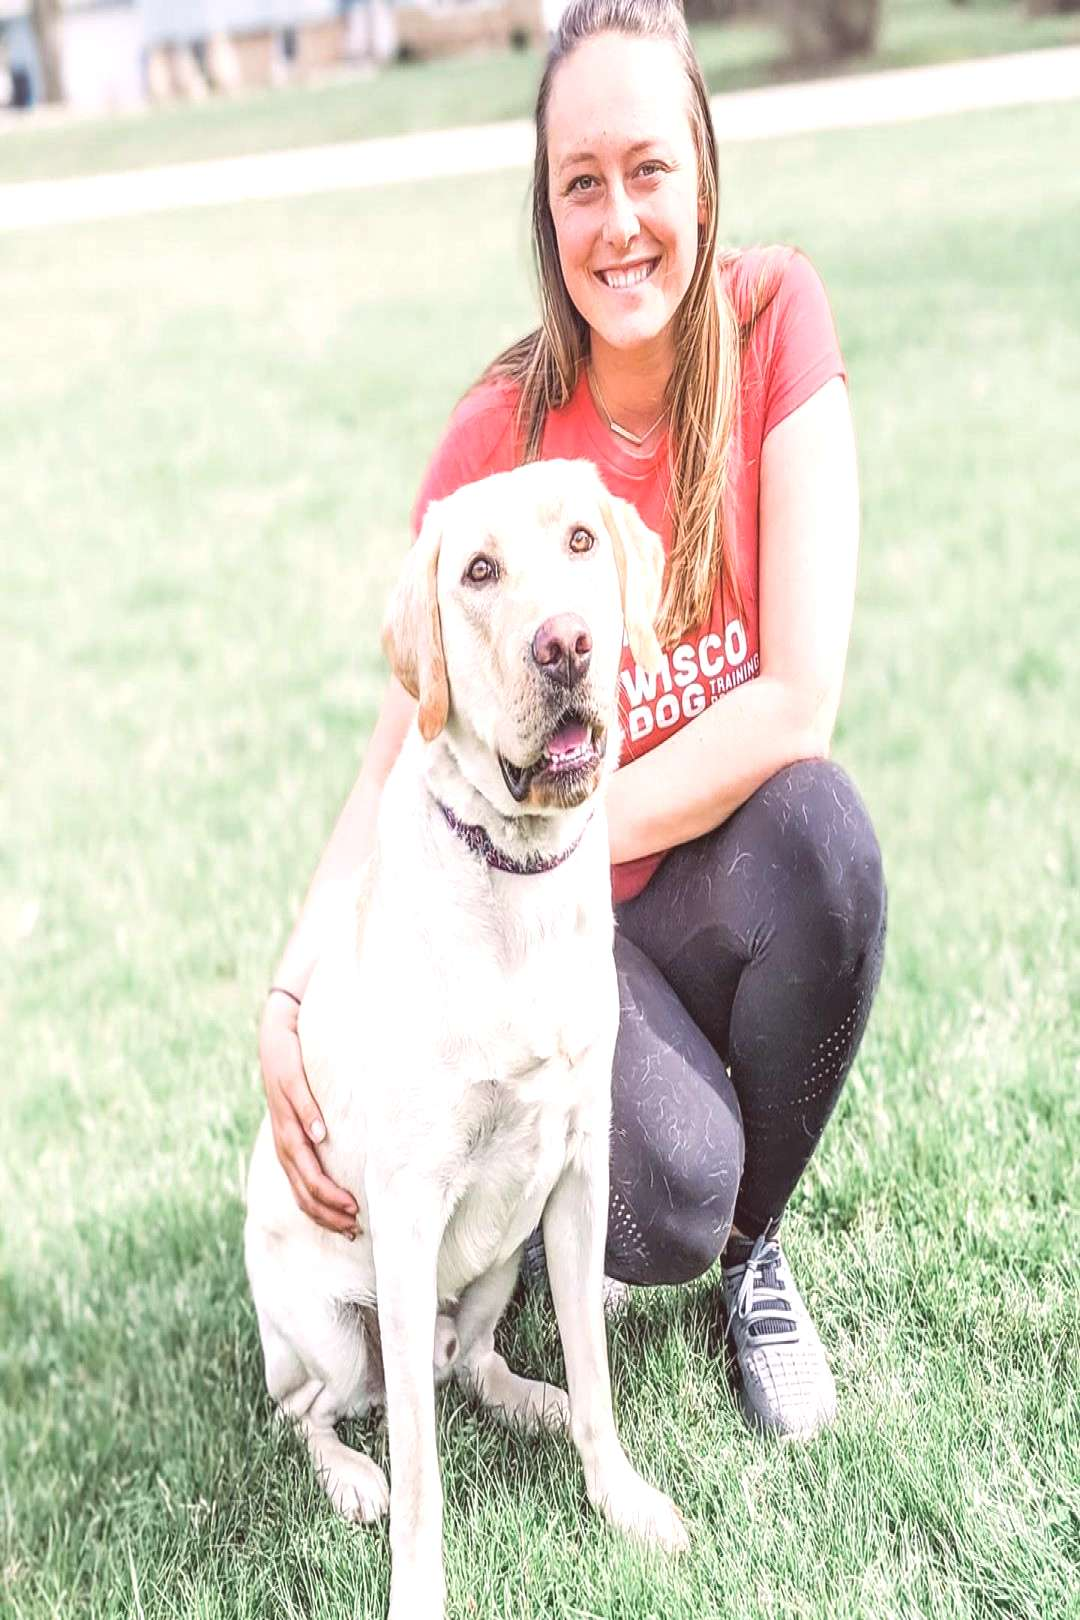 Sara Balanced Dog Trainer on April 20 2020 1 person dog outdoor a